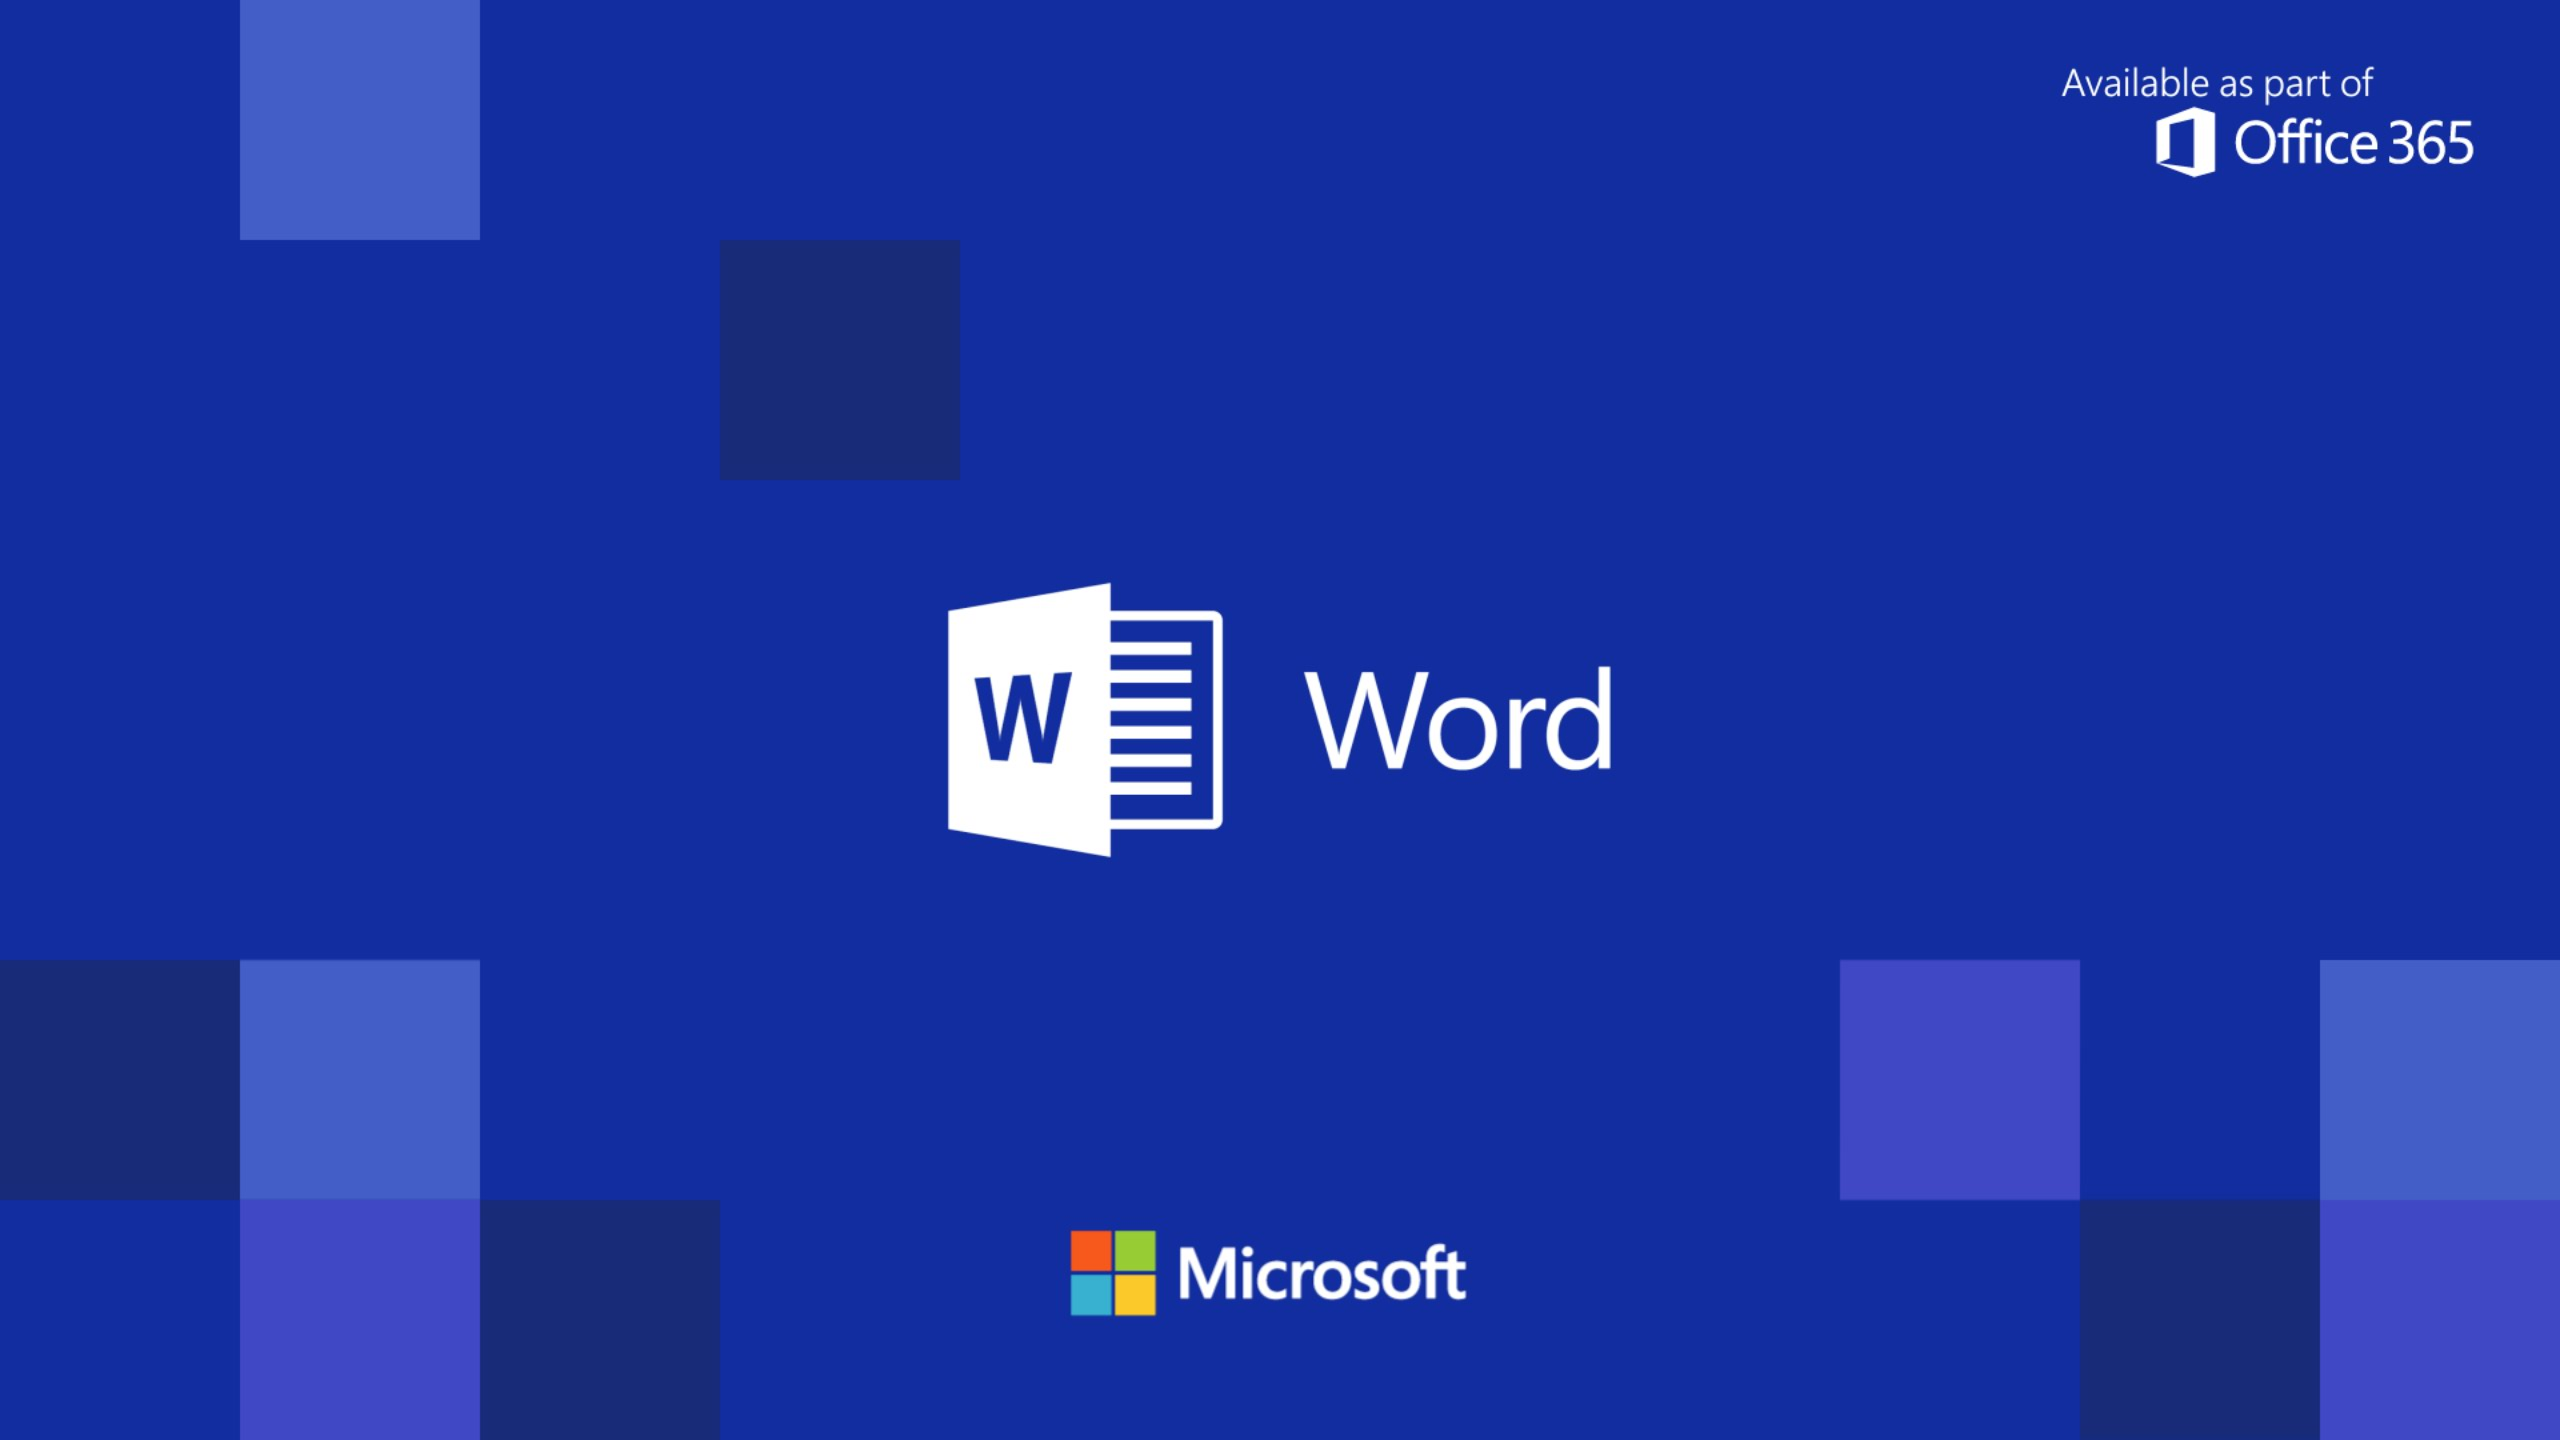 Word: Download Wallpaper Microsoft Word Gallery